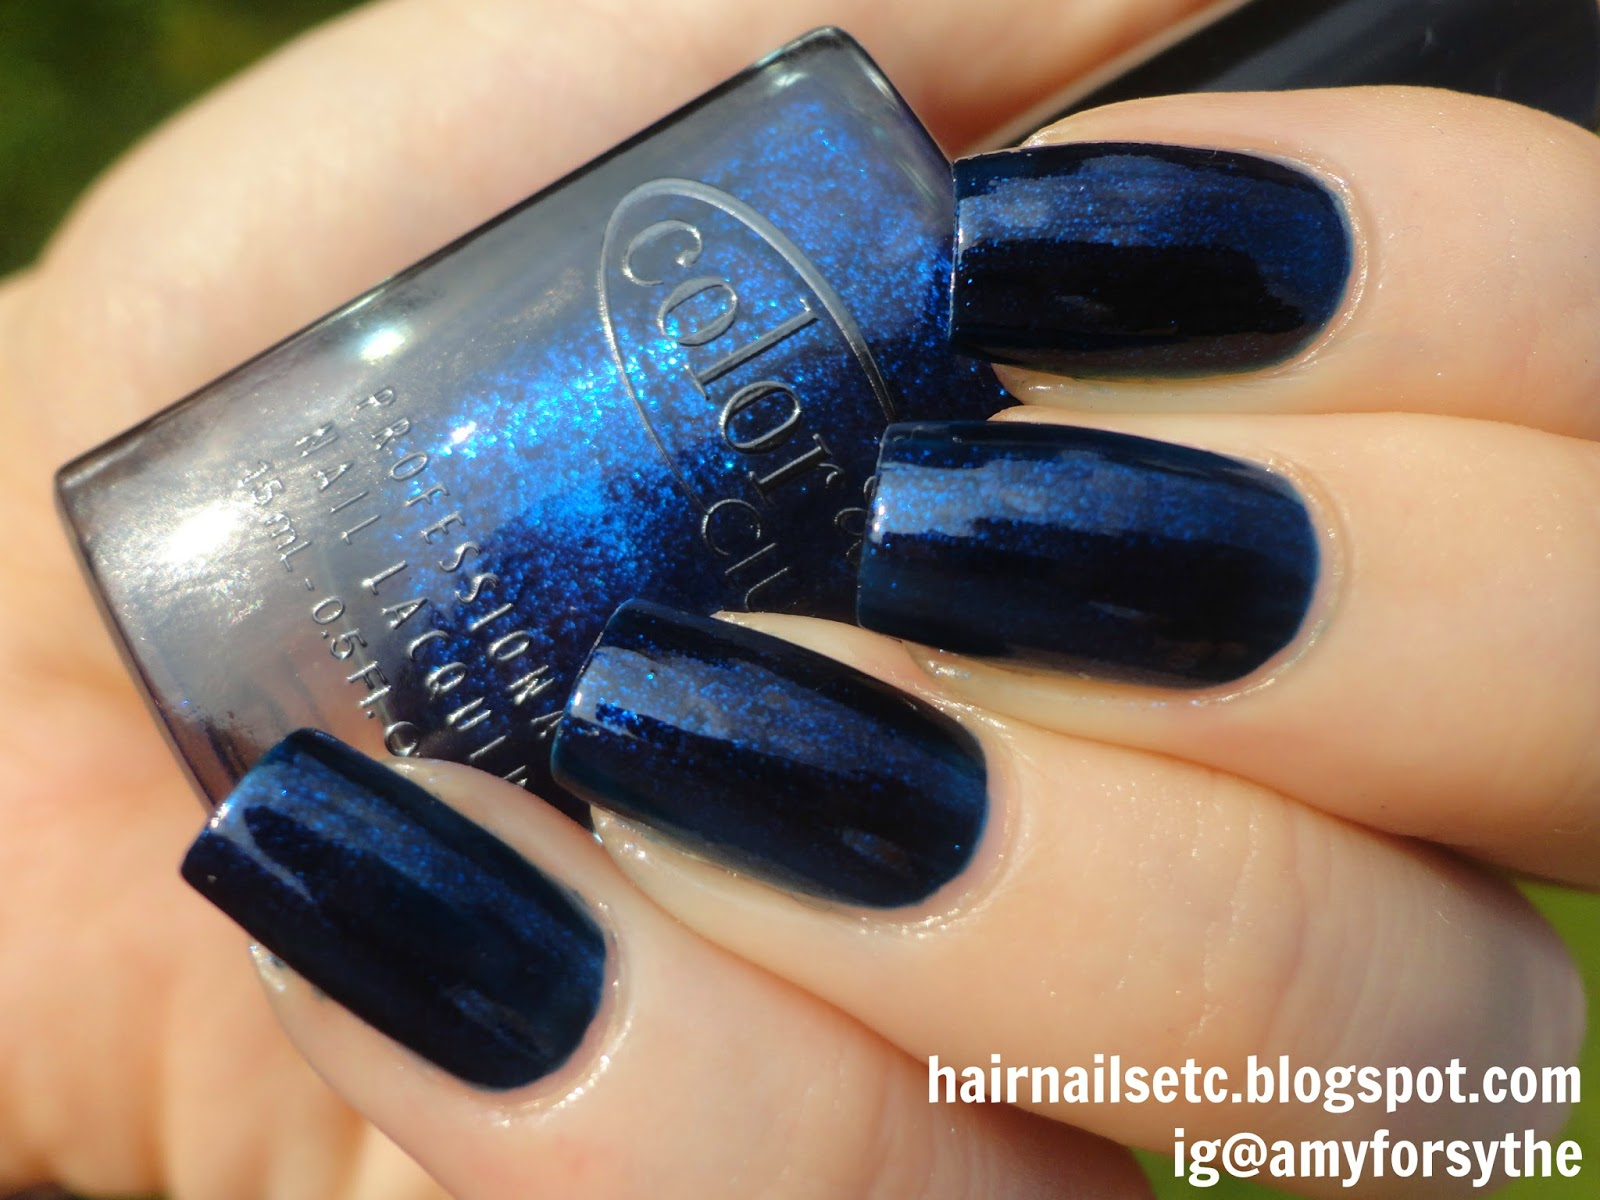 Swatch and Review of Color Club Nail Lacquer in Williamsburg from Girl About Town Collection, Fall 2013